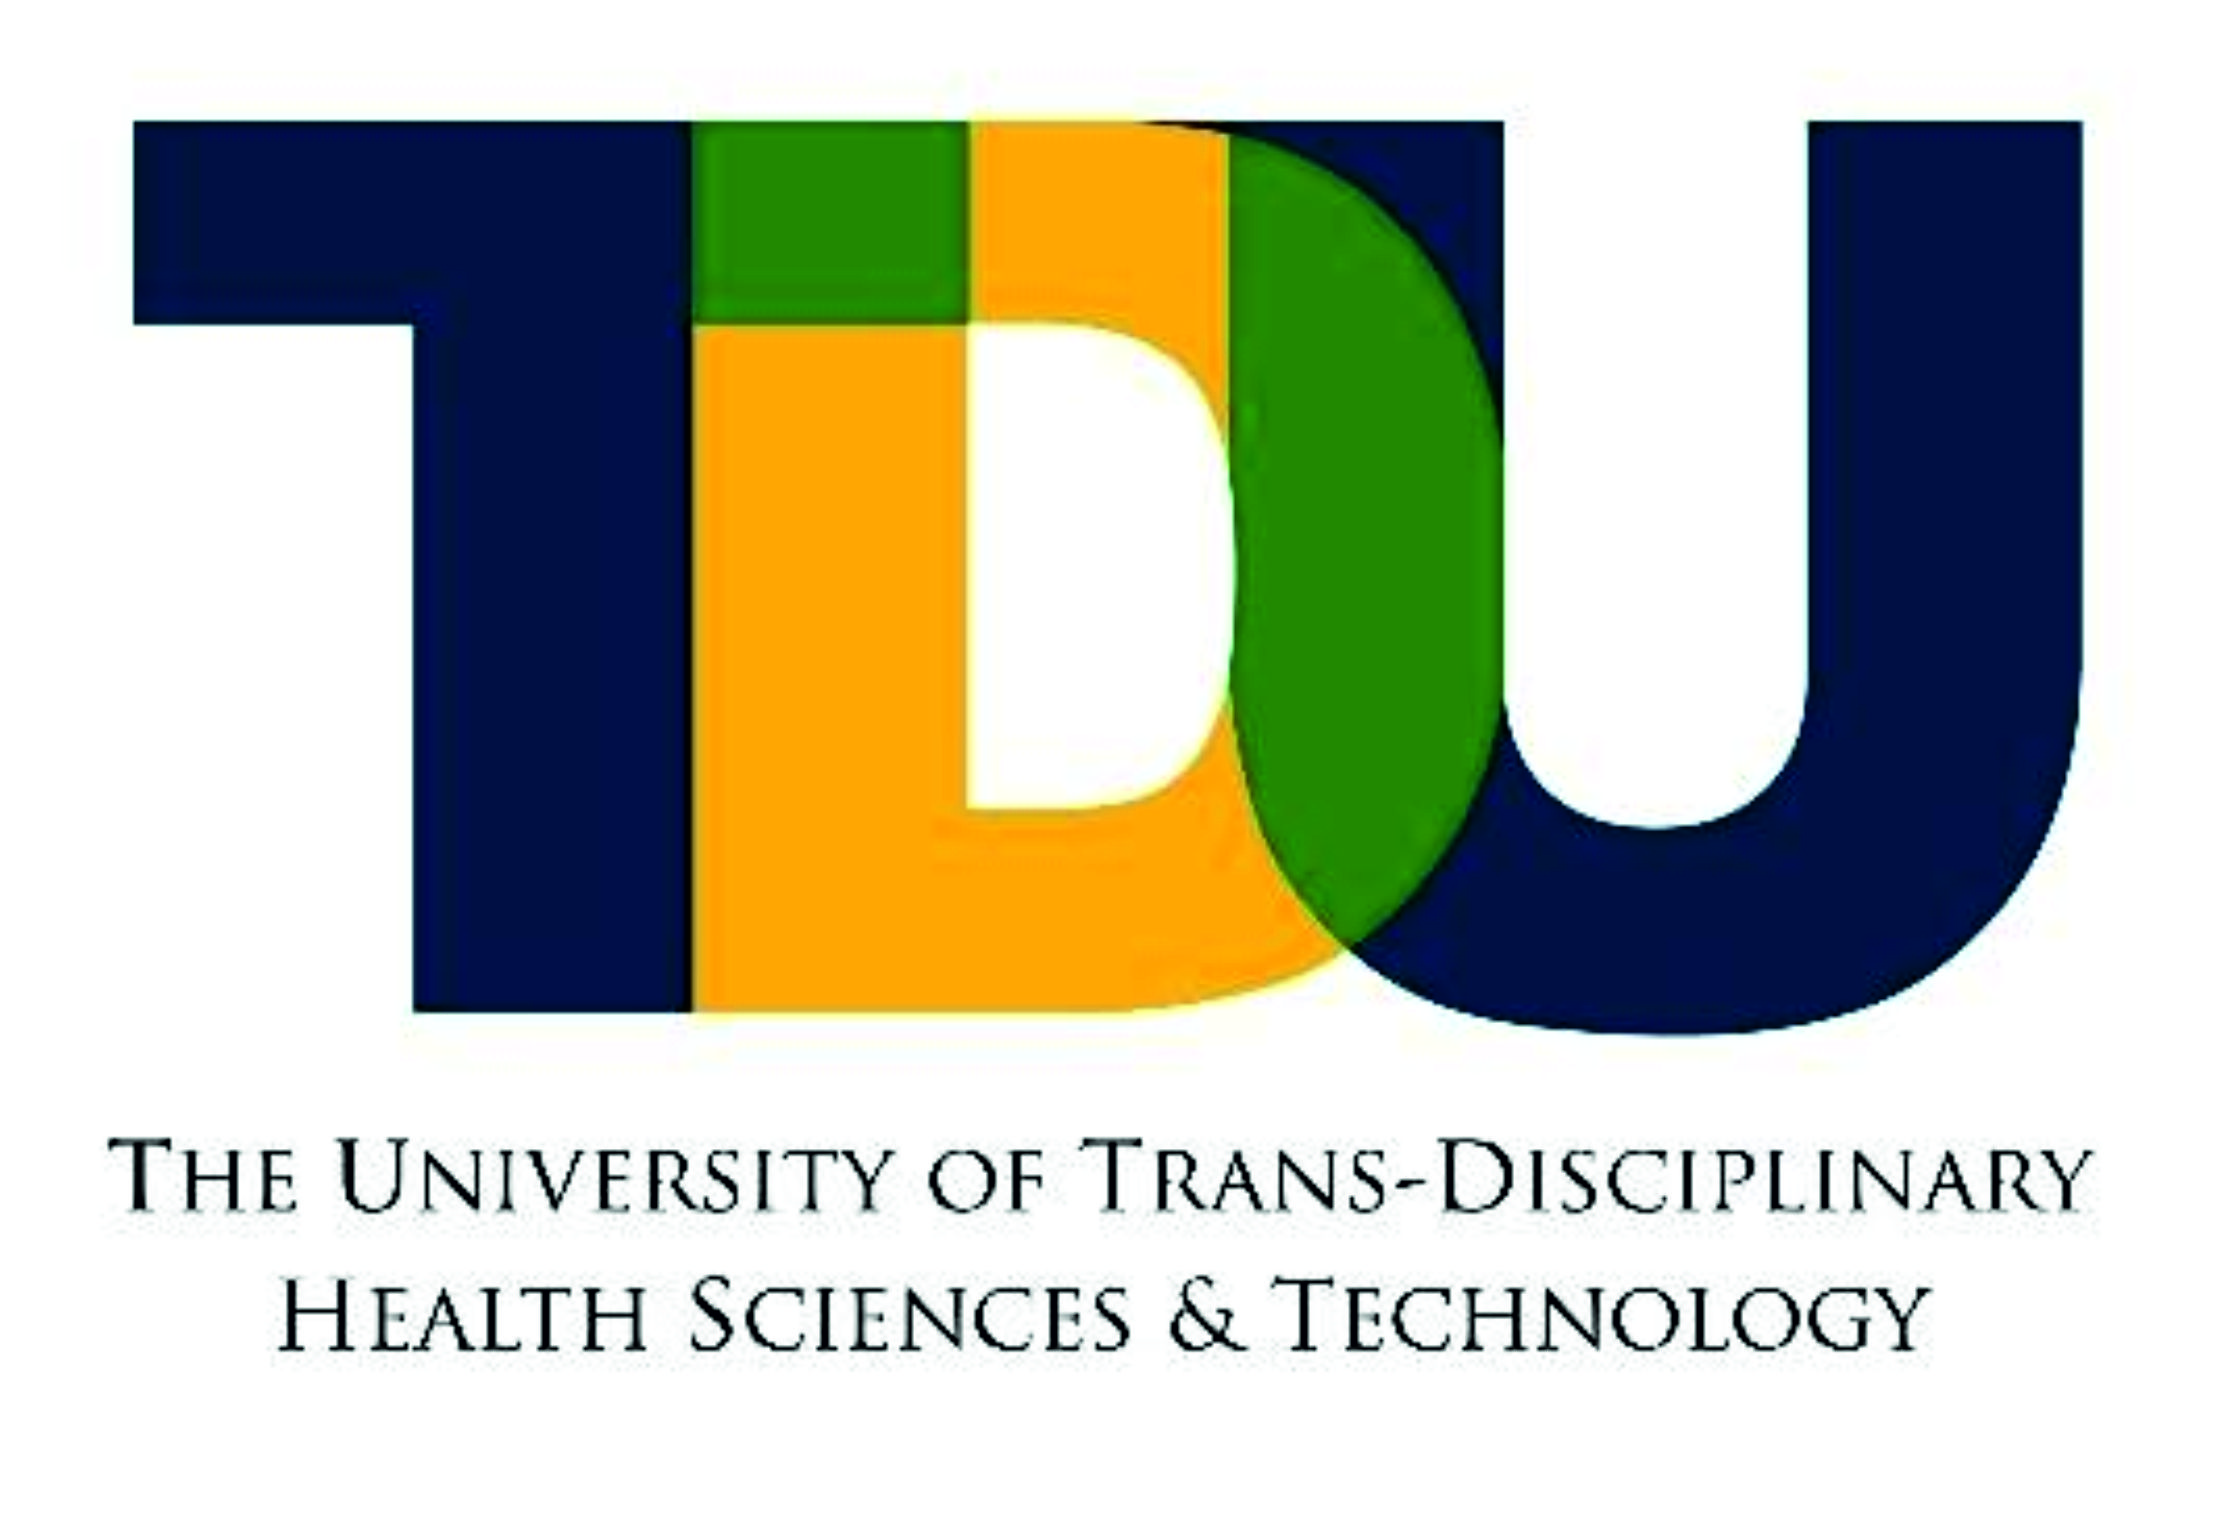 THE UNIVERSITY OF TRANS-DISCIPLINARY HEALTH SCIENCES AND TECHNOLOGY